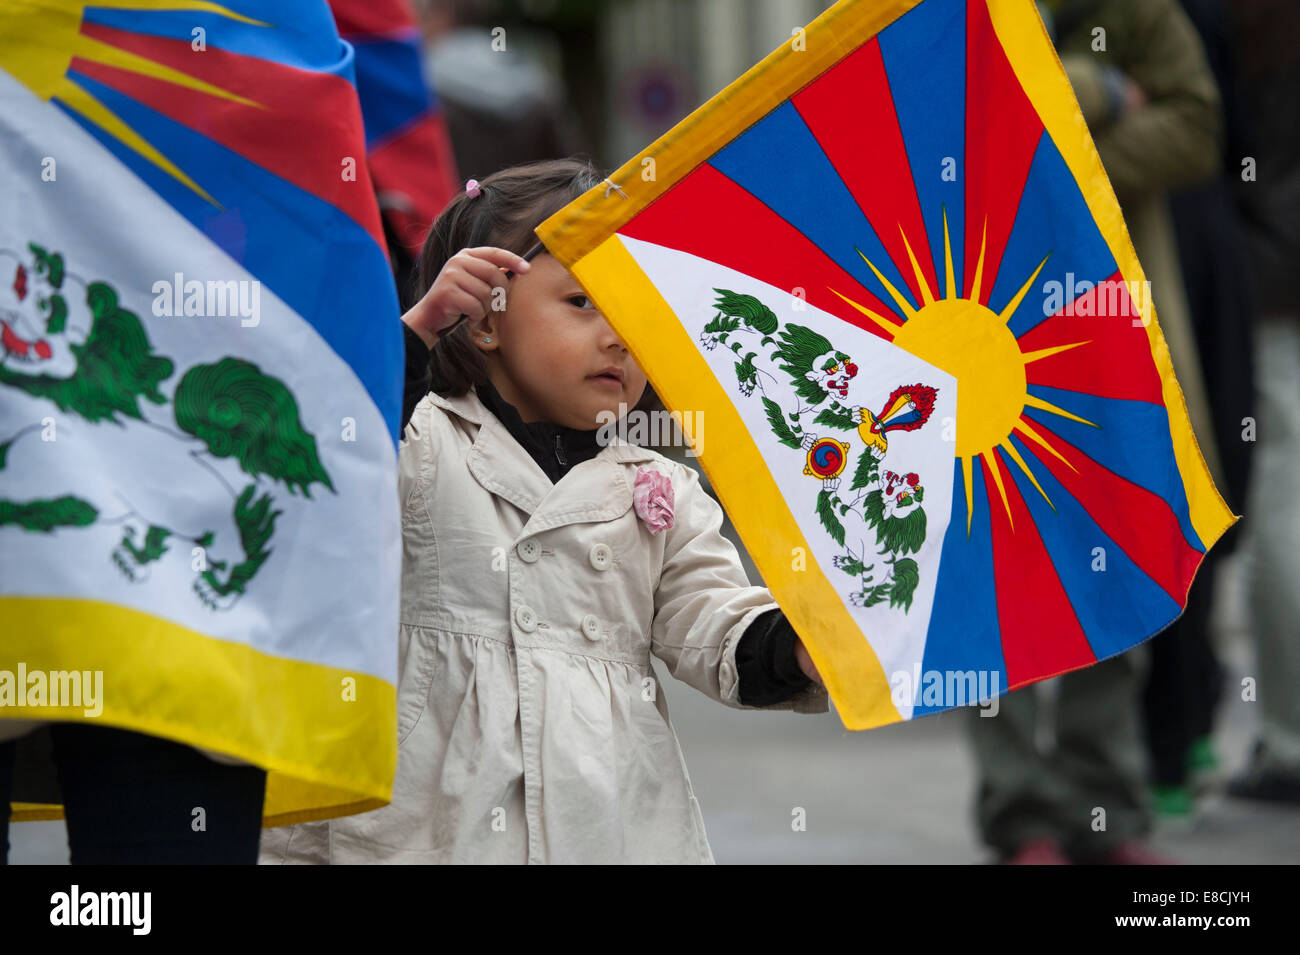 A little Tibetan girl is handling her flag at a protest rally of exile Tibetans in Bern, Switzerland - Stock Image